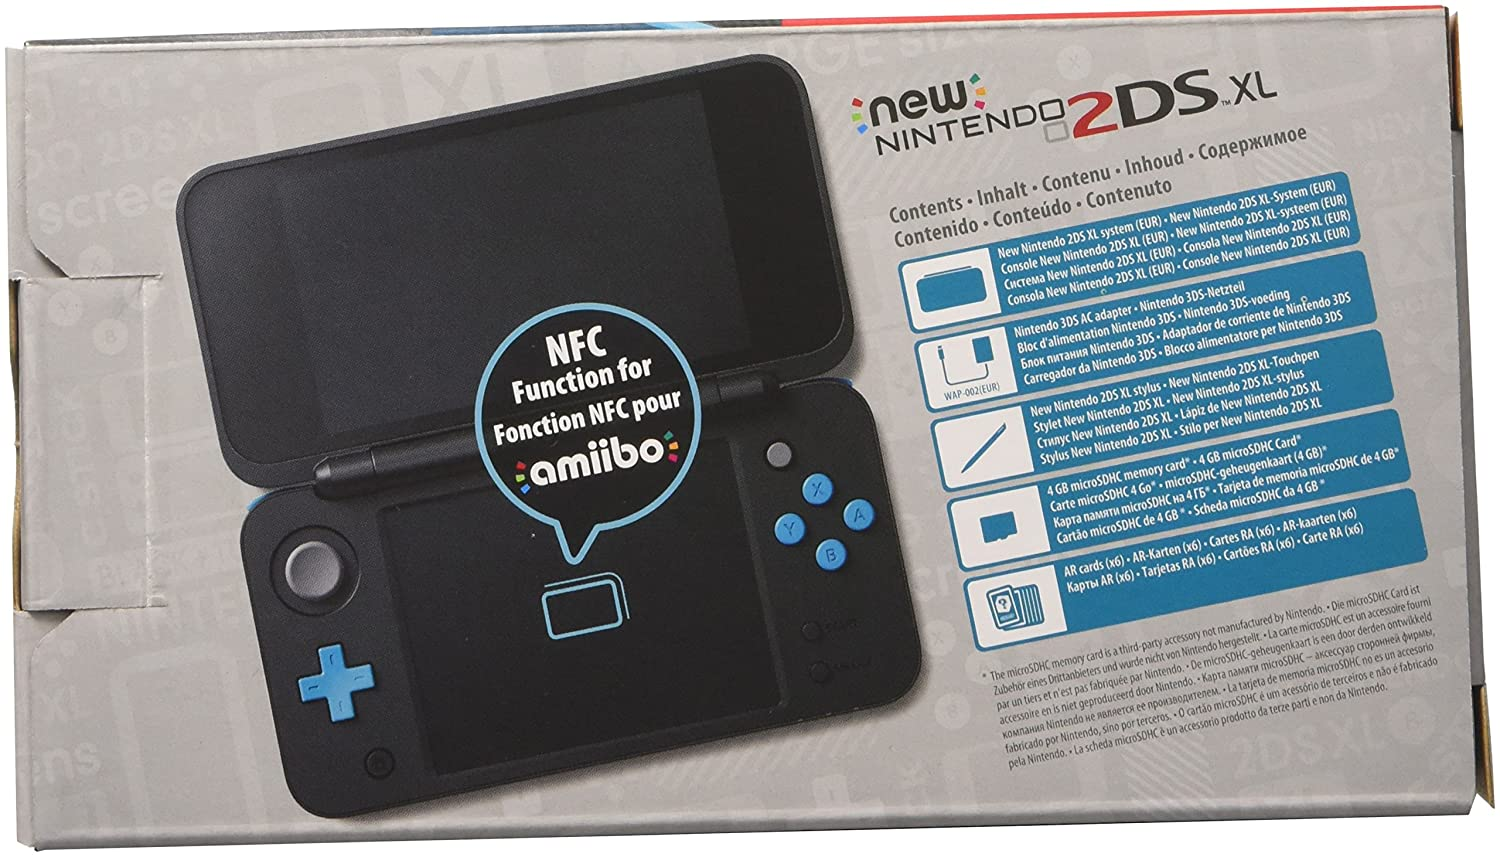 Nintendo 3Ds - Consola New Nintendo 2Ds XL, Color Negro y ...